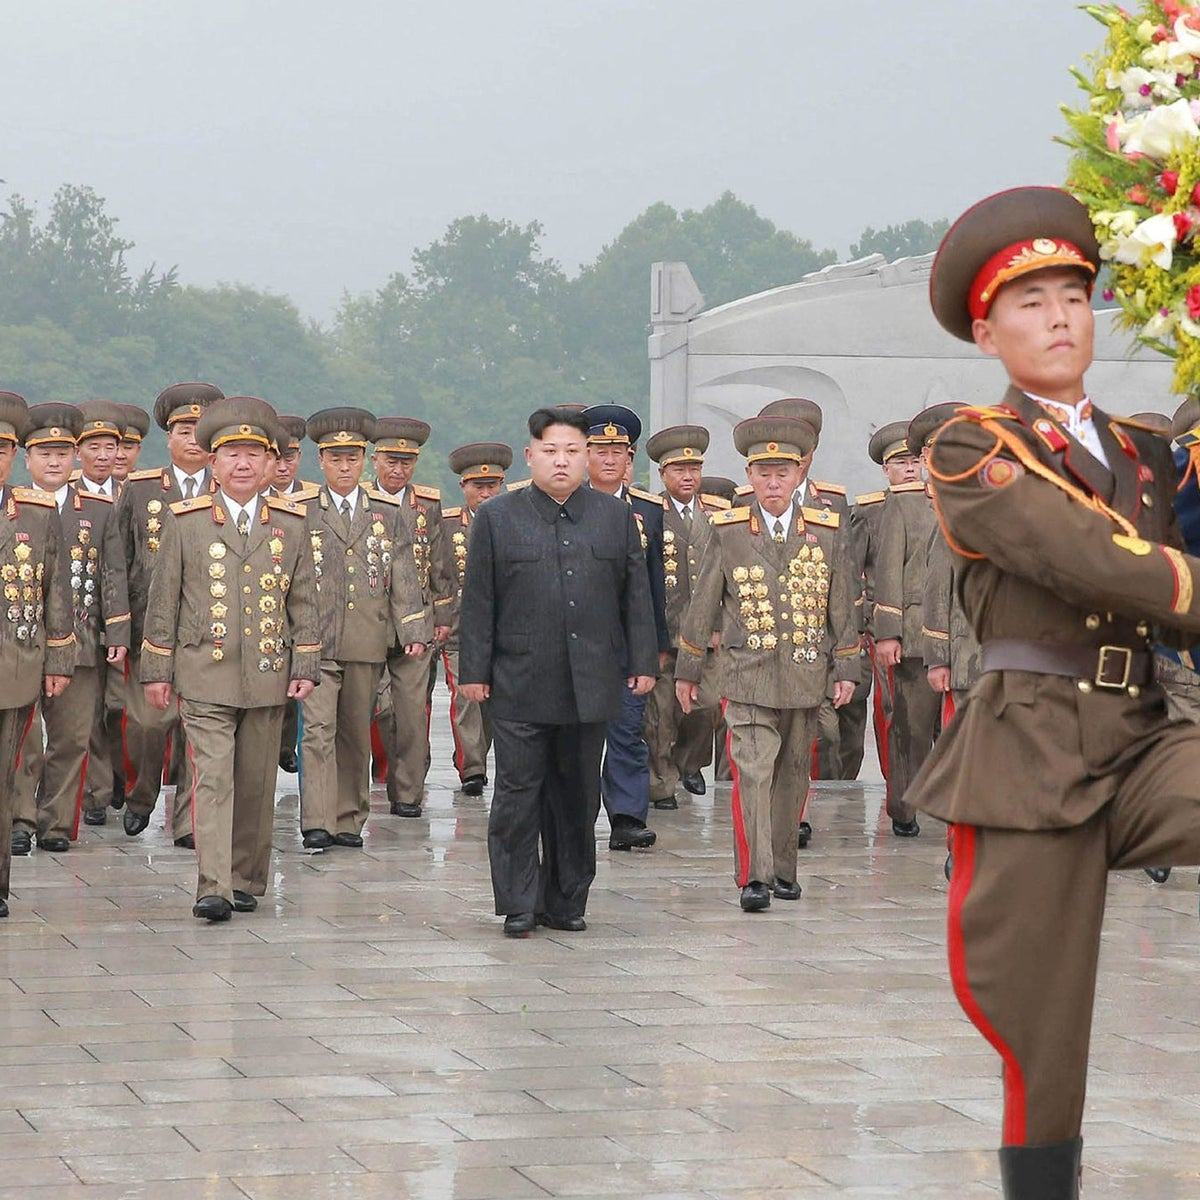 North Korean leader Kim Jong Un visits war graves 64th anniversary of the armistice which ended the Korean War, in a photo released on July 28, 2017 by the Korean Central News Agency in Pyongyang.